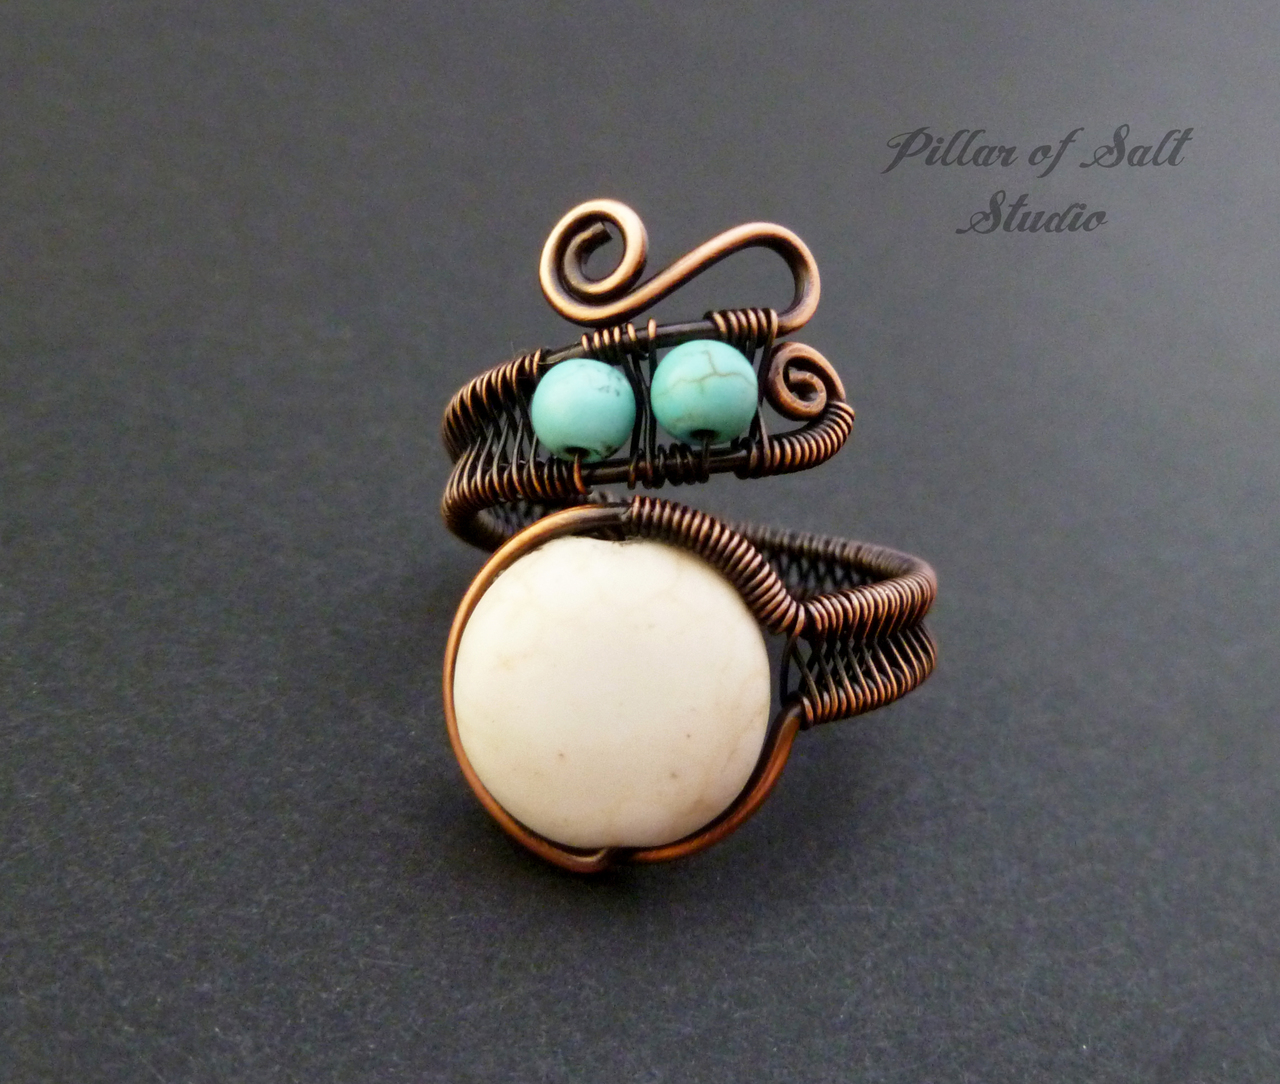 Adjustable Copper Wire wrapped ring with magnesite beads / Pillar of Salt Studio